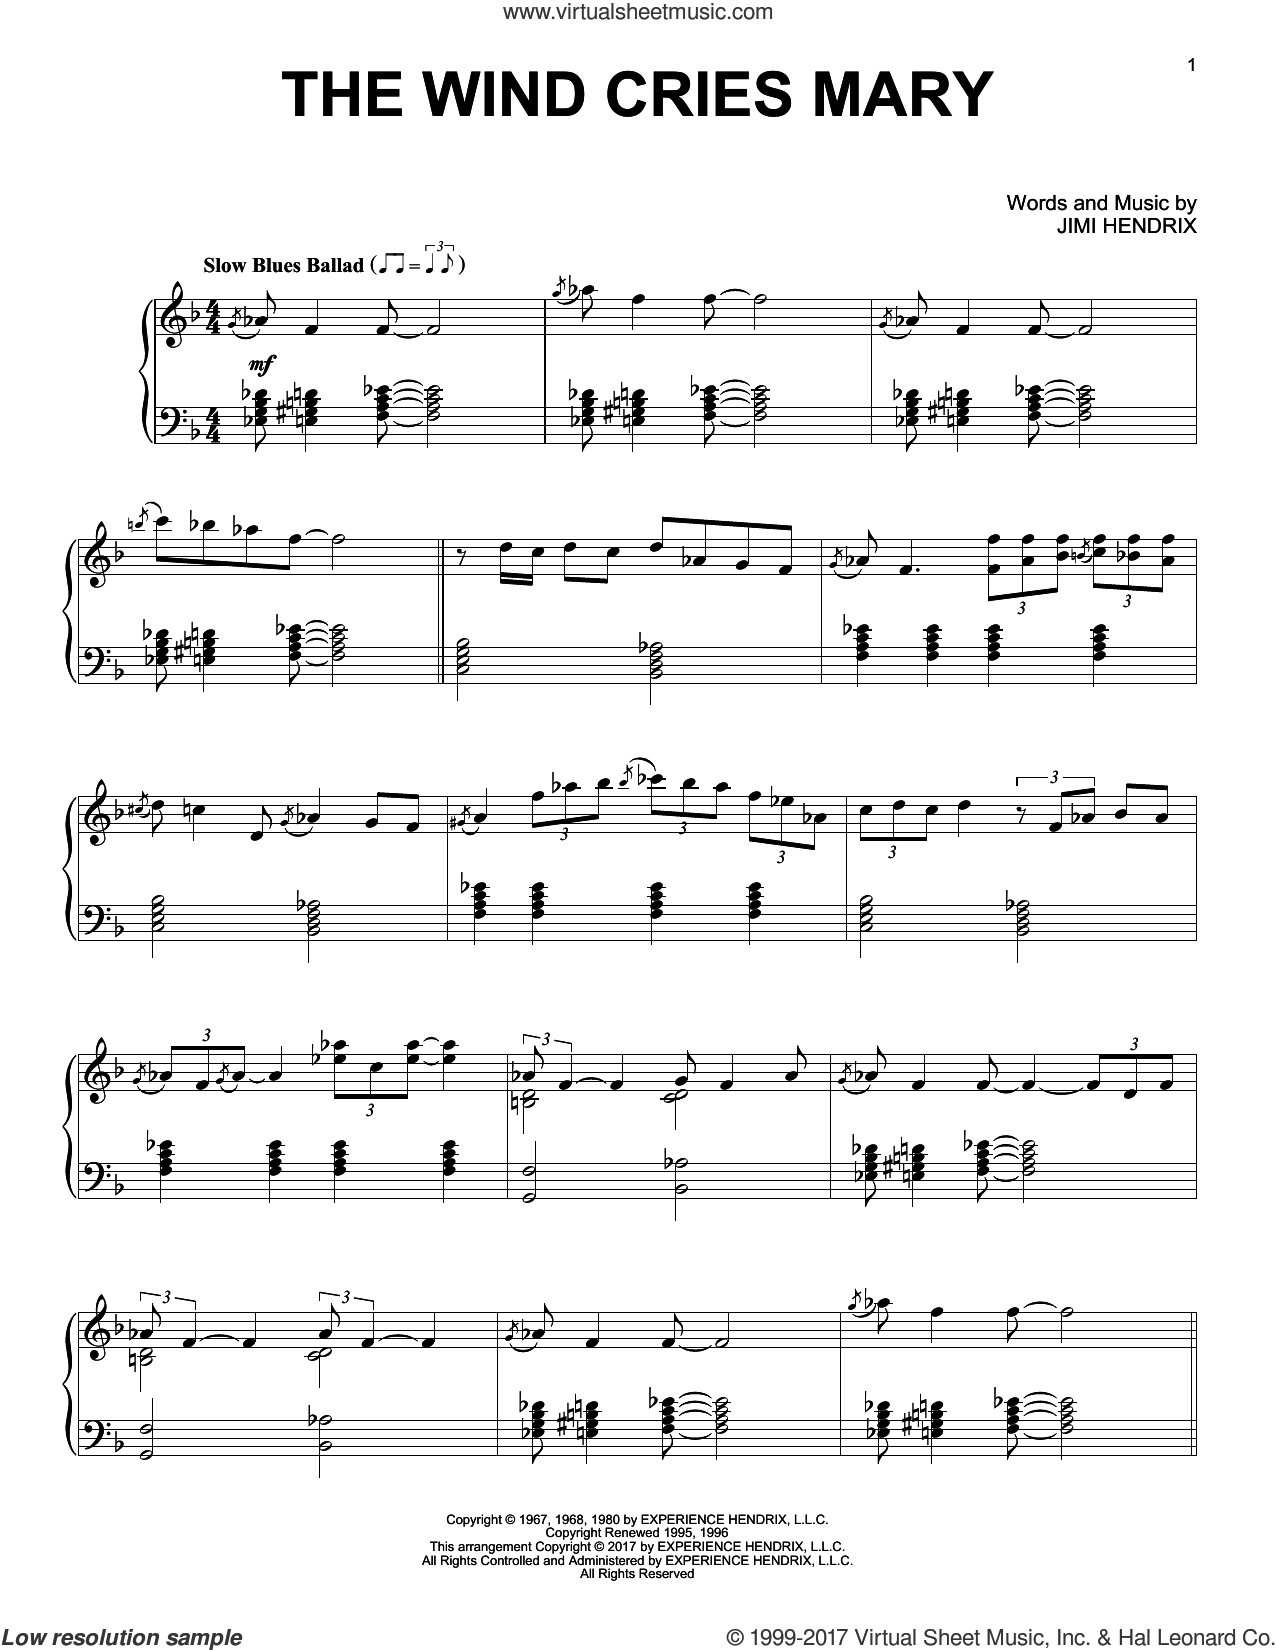 The Wind Cries Mary sheet music for piano solo by Jimi Hendrix, intermediate skill level